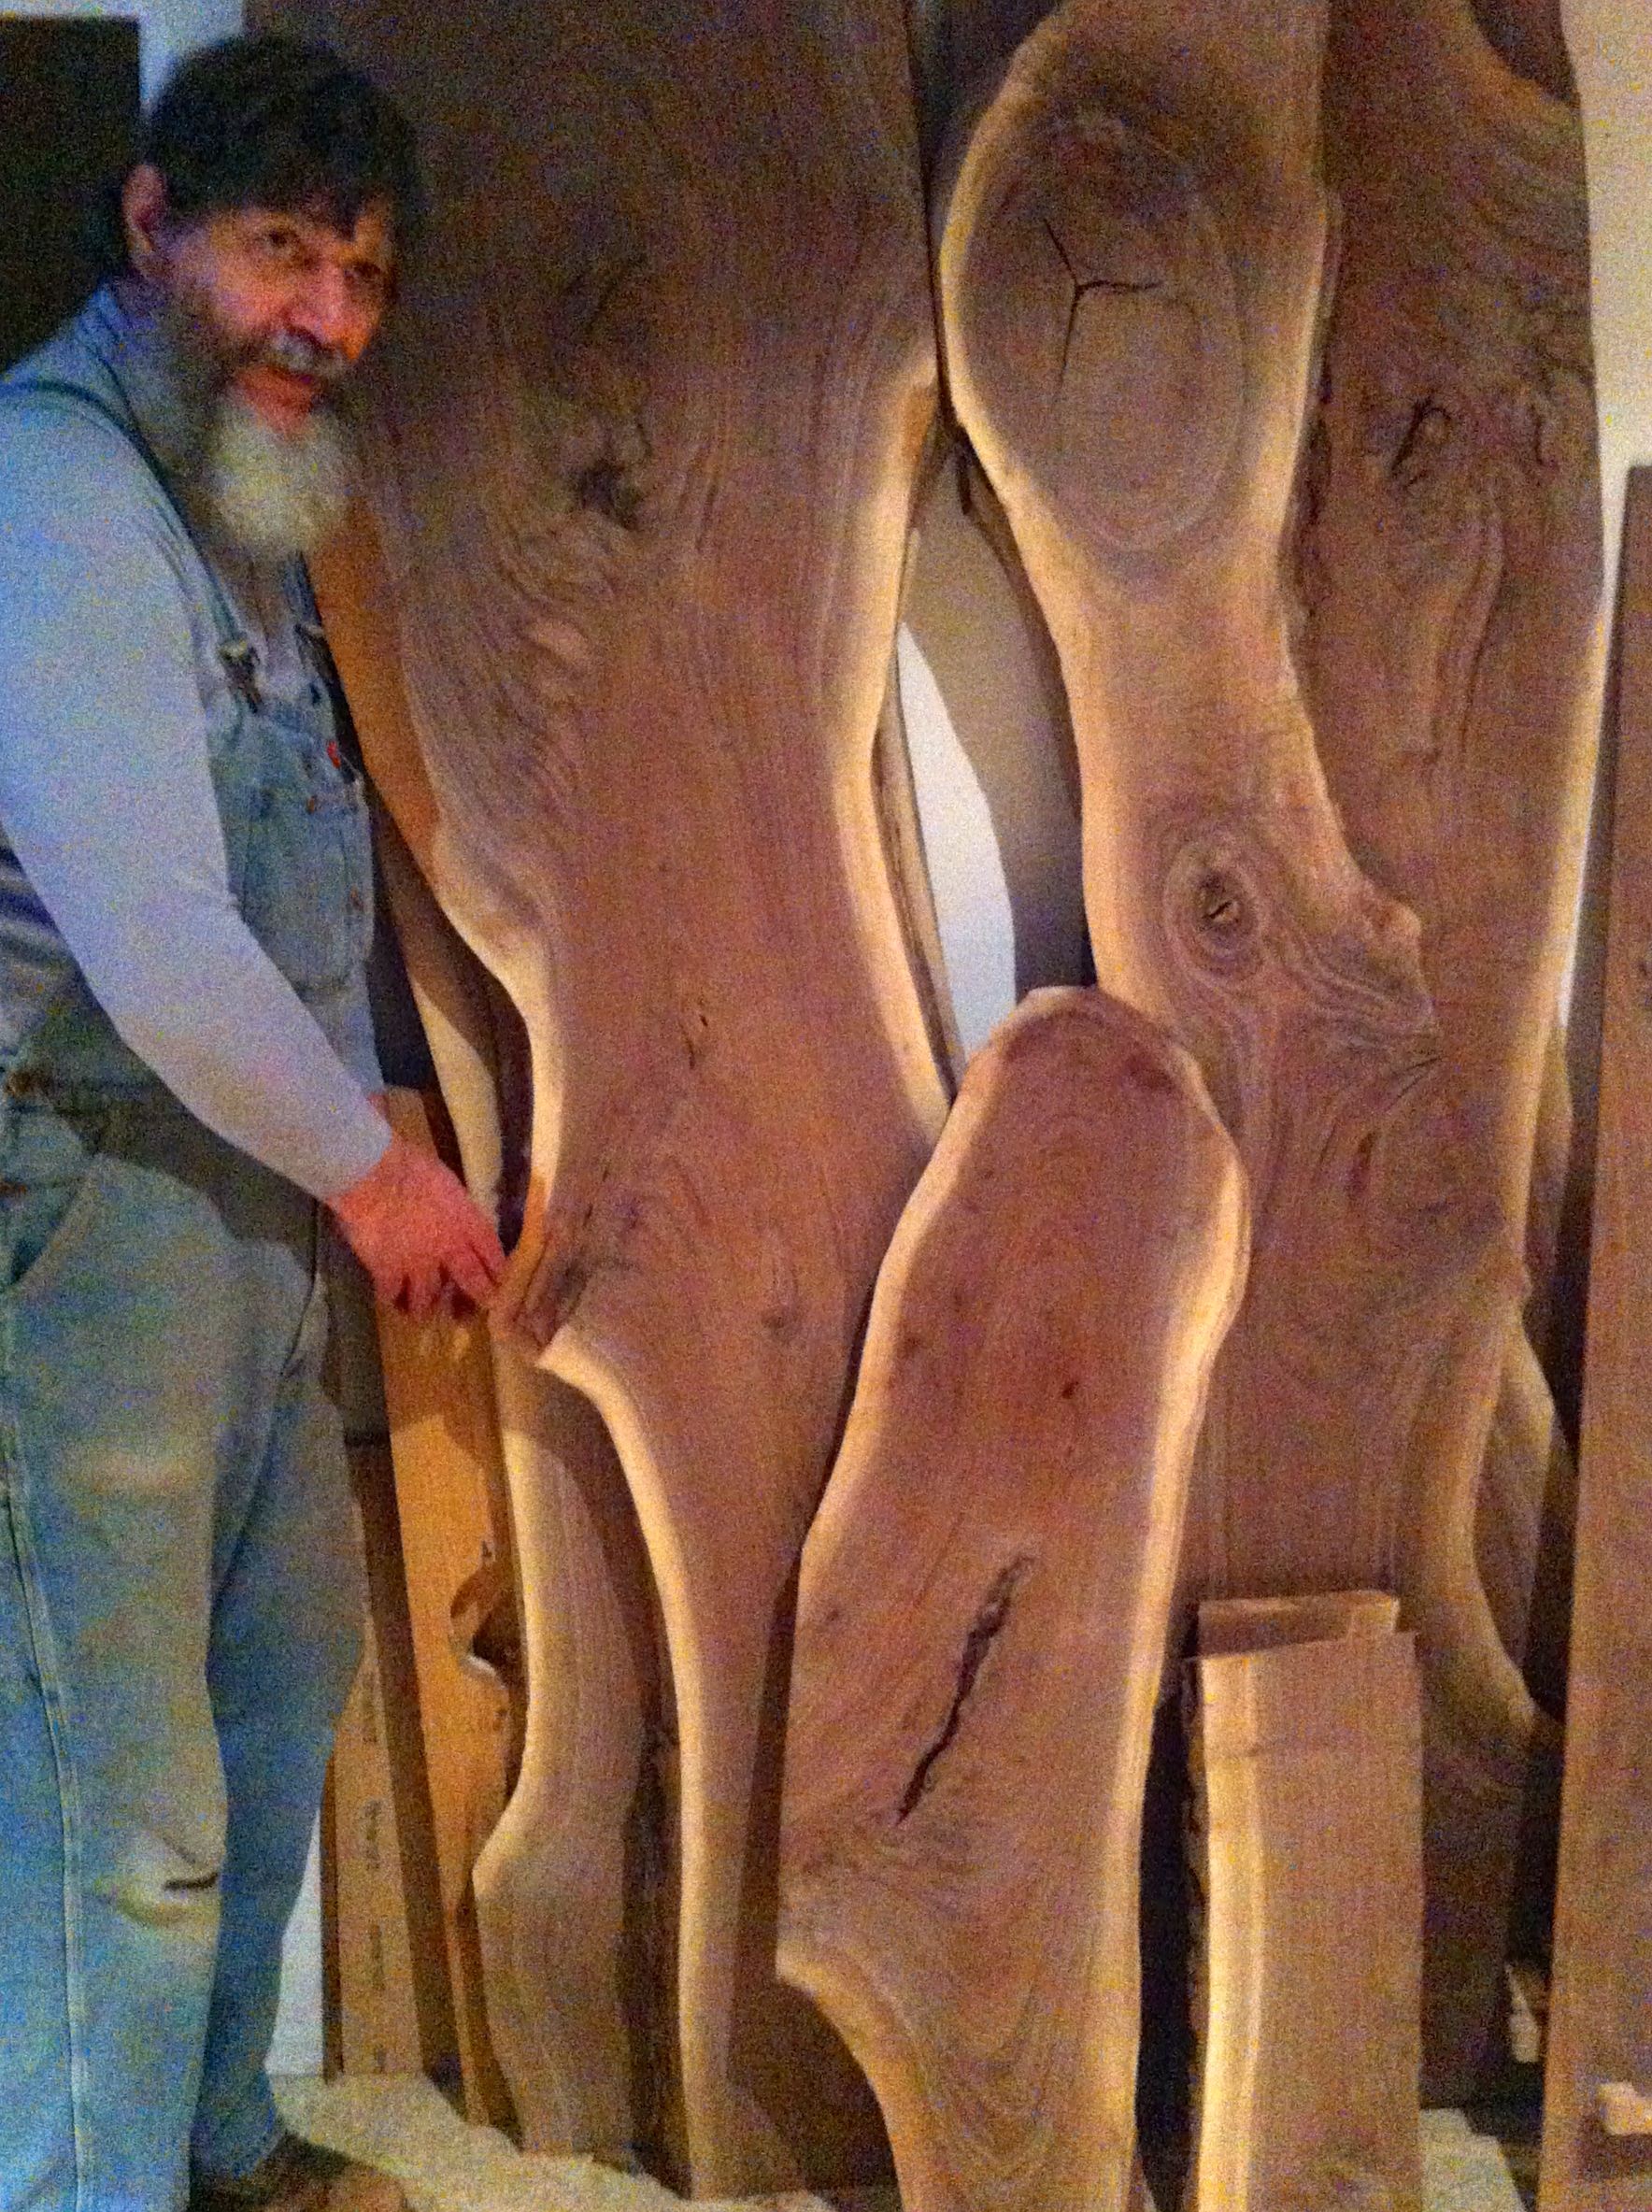 George Wurtzel with walnut Slabs